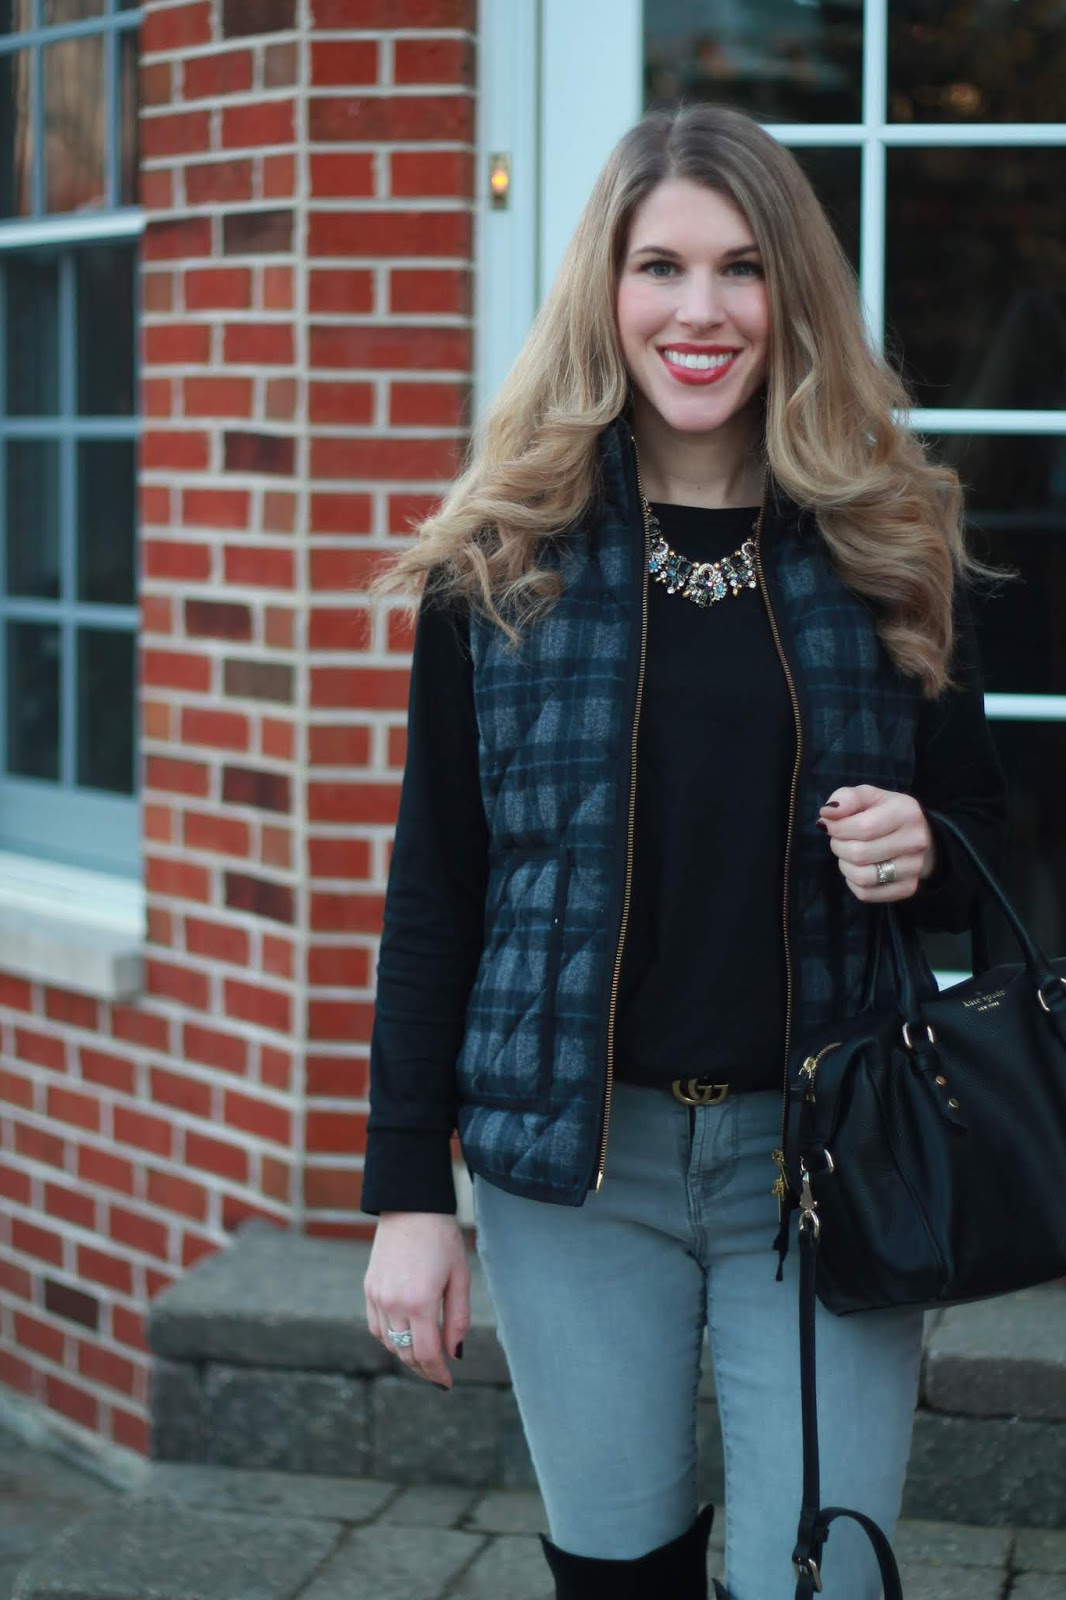 plaid vest, black tee, grey jeans, black OTK boots, statement necklace